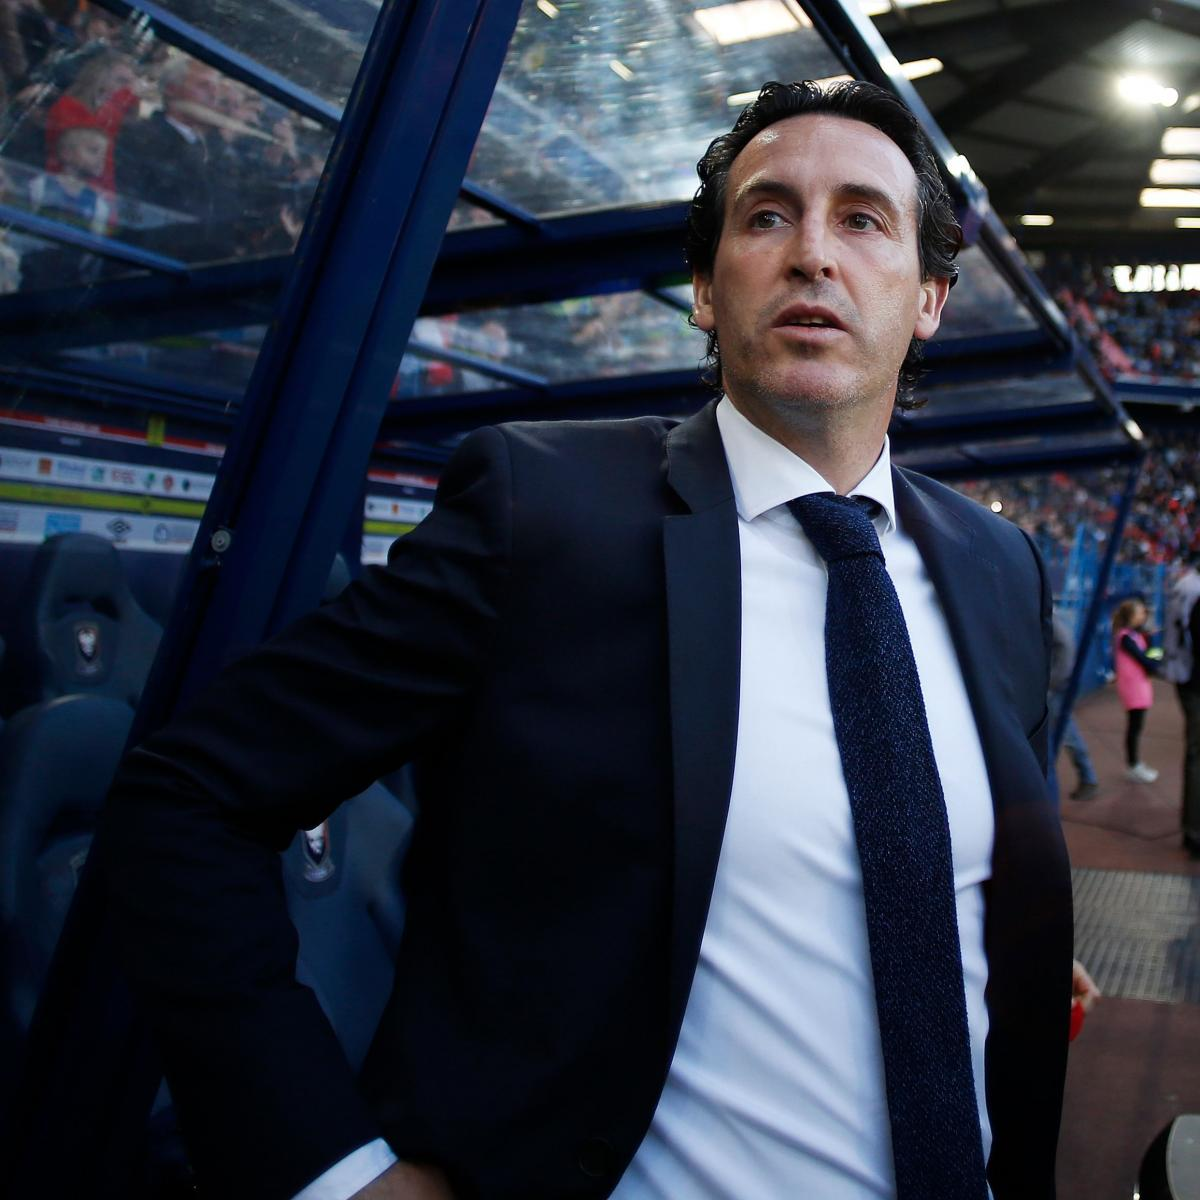 Report: Unai Emery to Be Named as Arsenal's Arsene Wenger Replacement as Manager